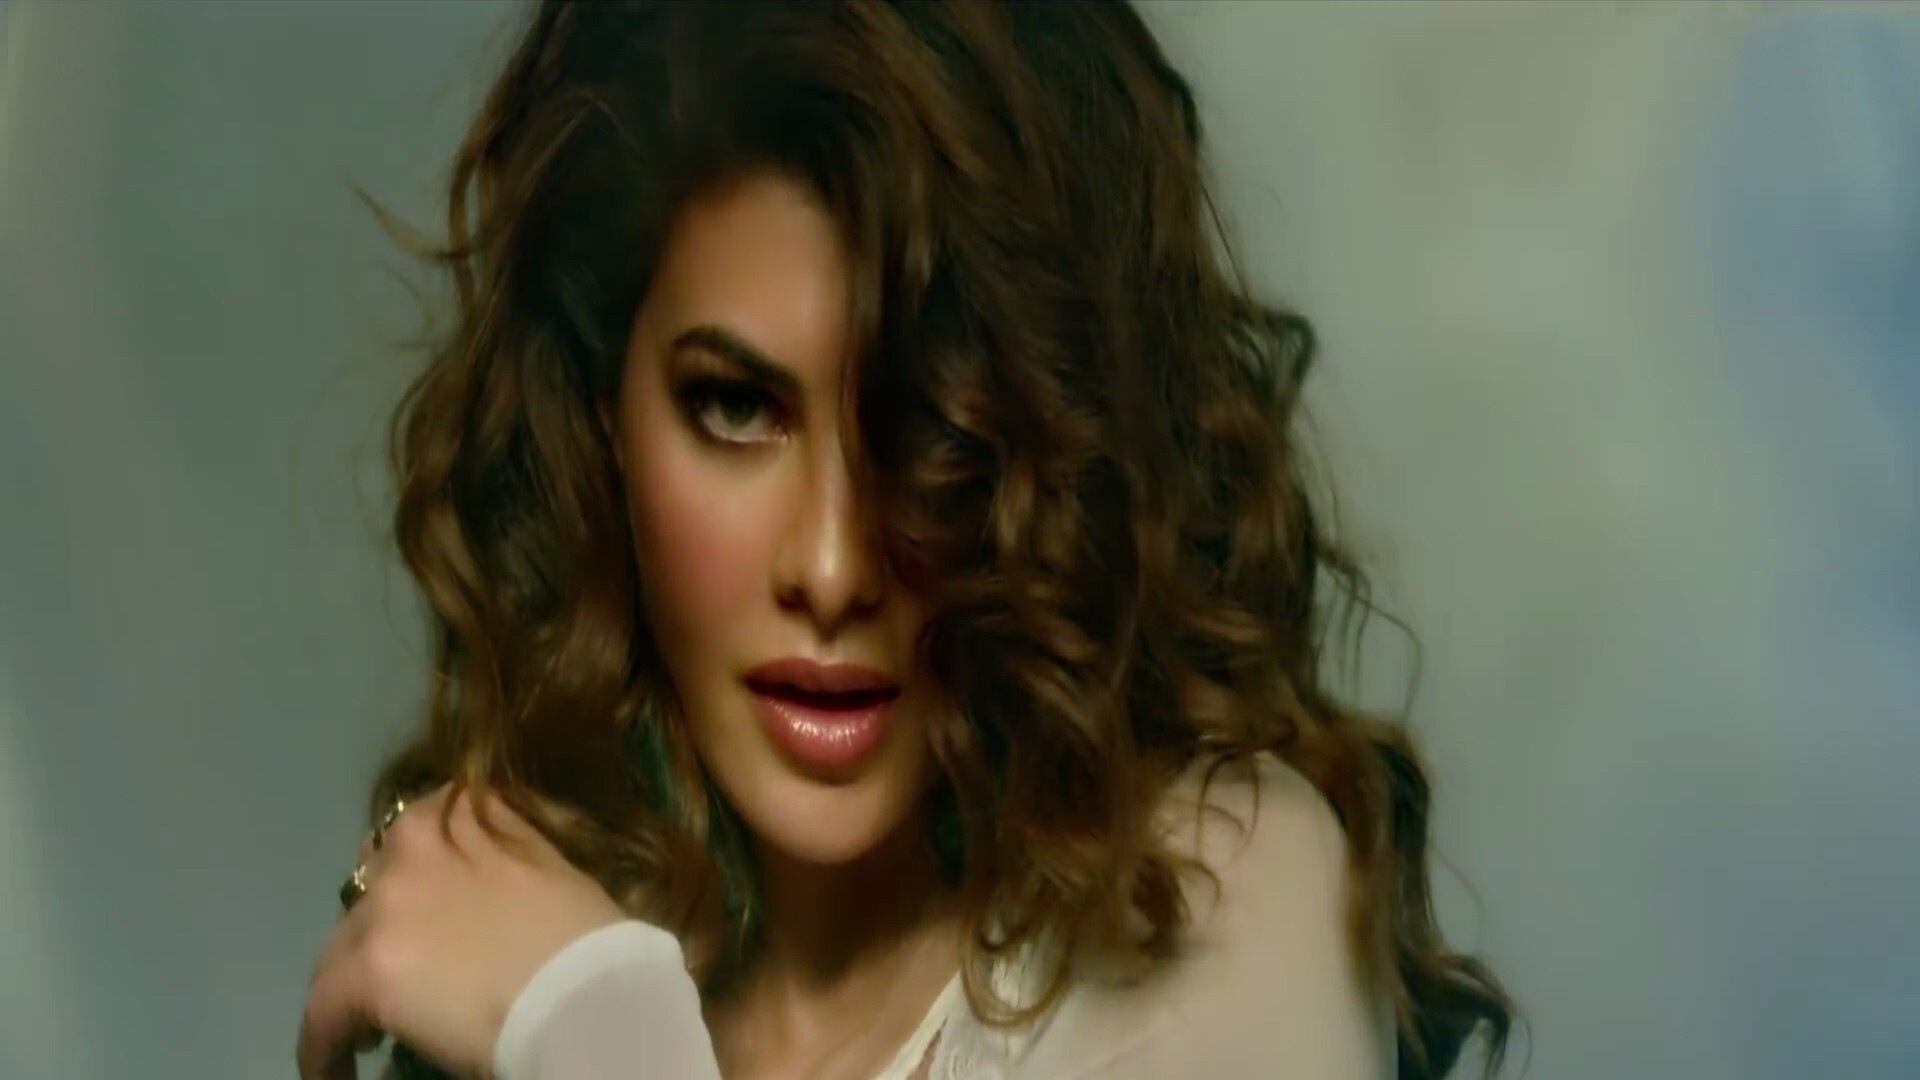 jacqueline fernandez in race 3 film hd wallpapers | hd wallpapers